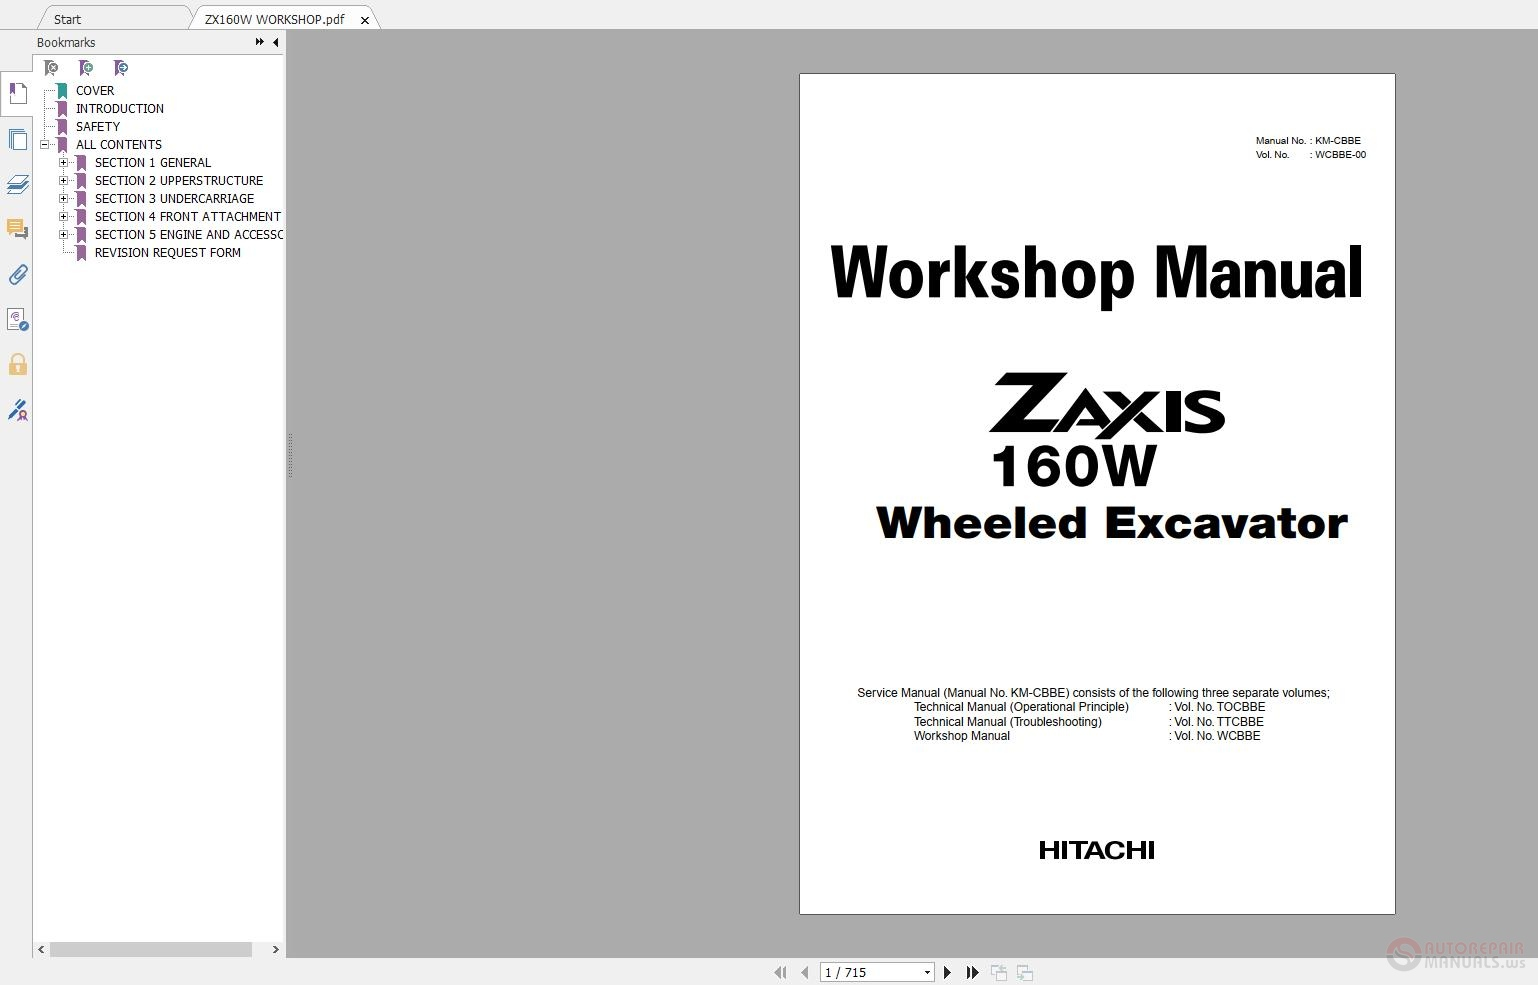 hight resolution of hitachi workshop technical manual and wiring diagram full dvd auto repair software auto epc software auto repair manual workshop manual service